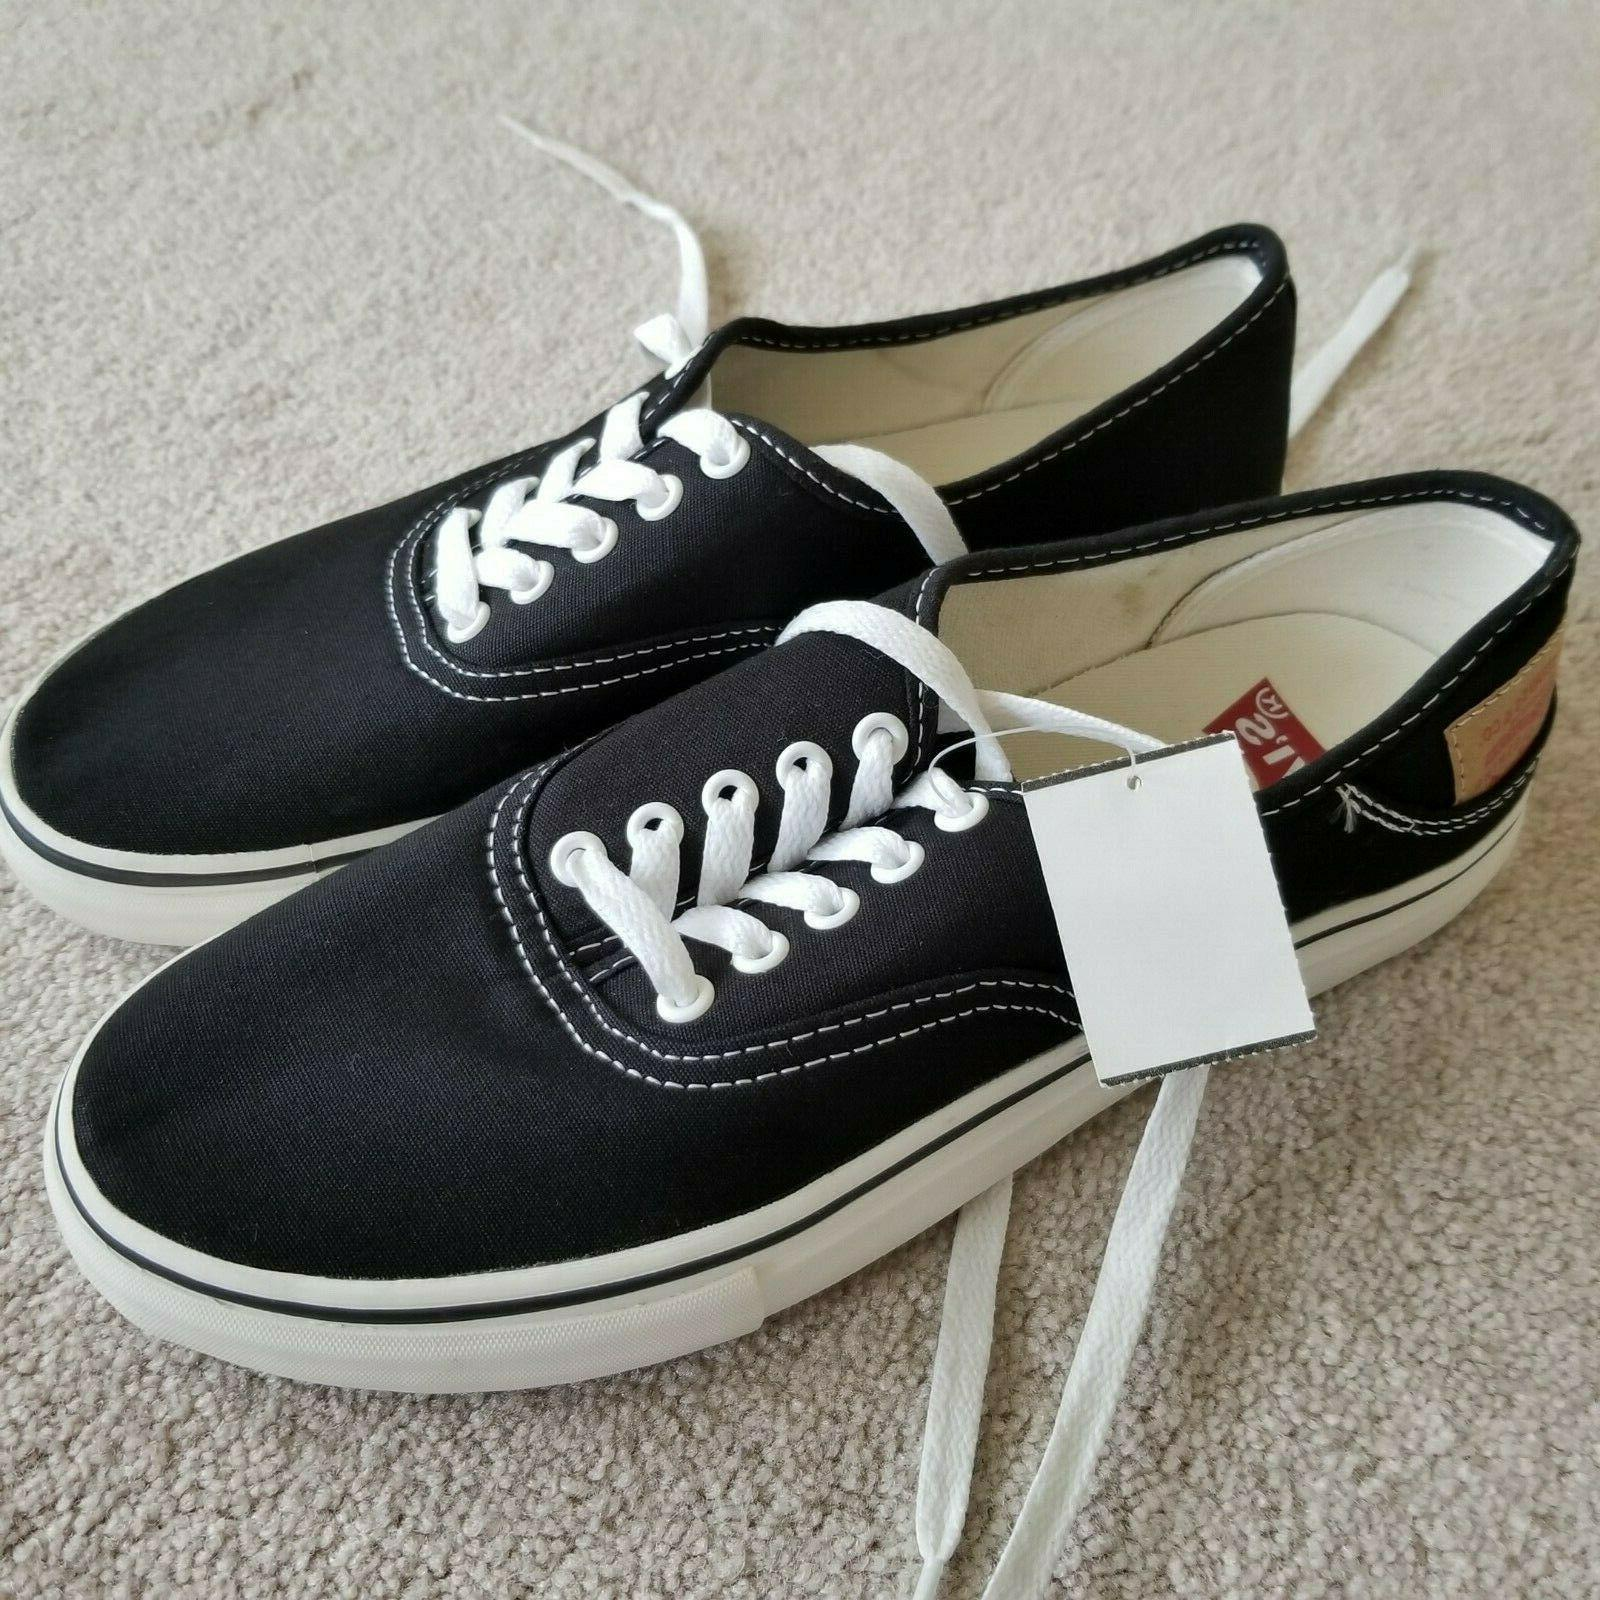 Levi's Black Shoes Up Men's